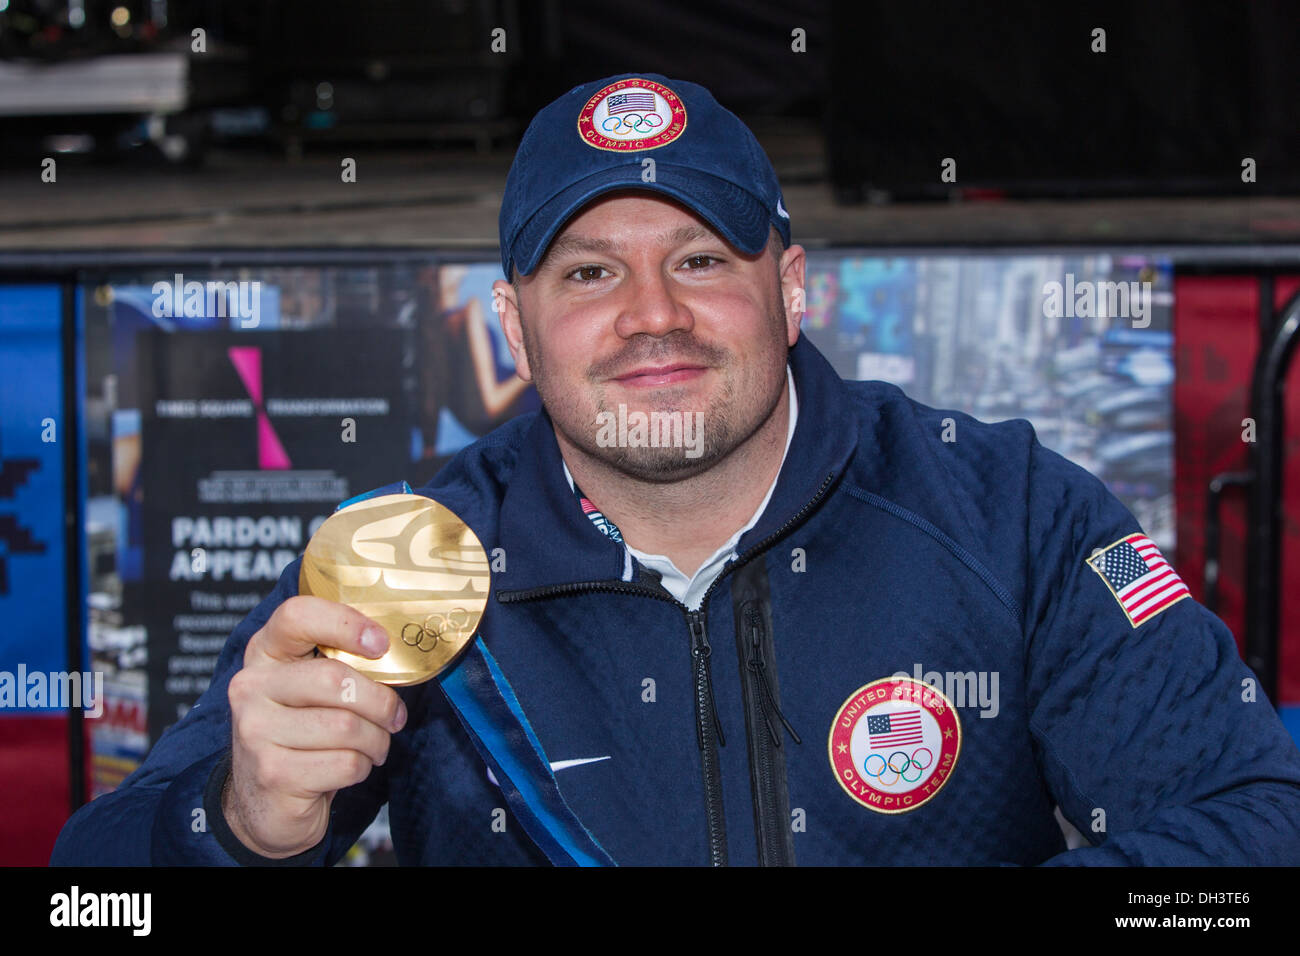 Steve Holcomb showing off his gold medal from the 2010 Olympics at the USOC 100 Day Countdown to the Sochi - Stock Image